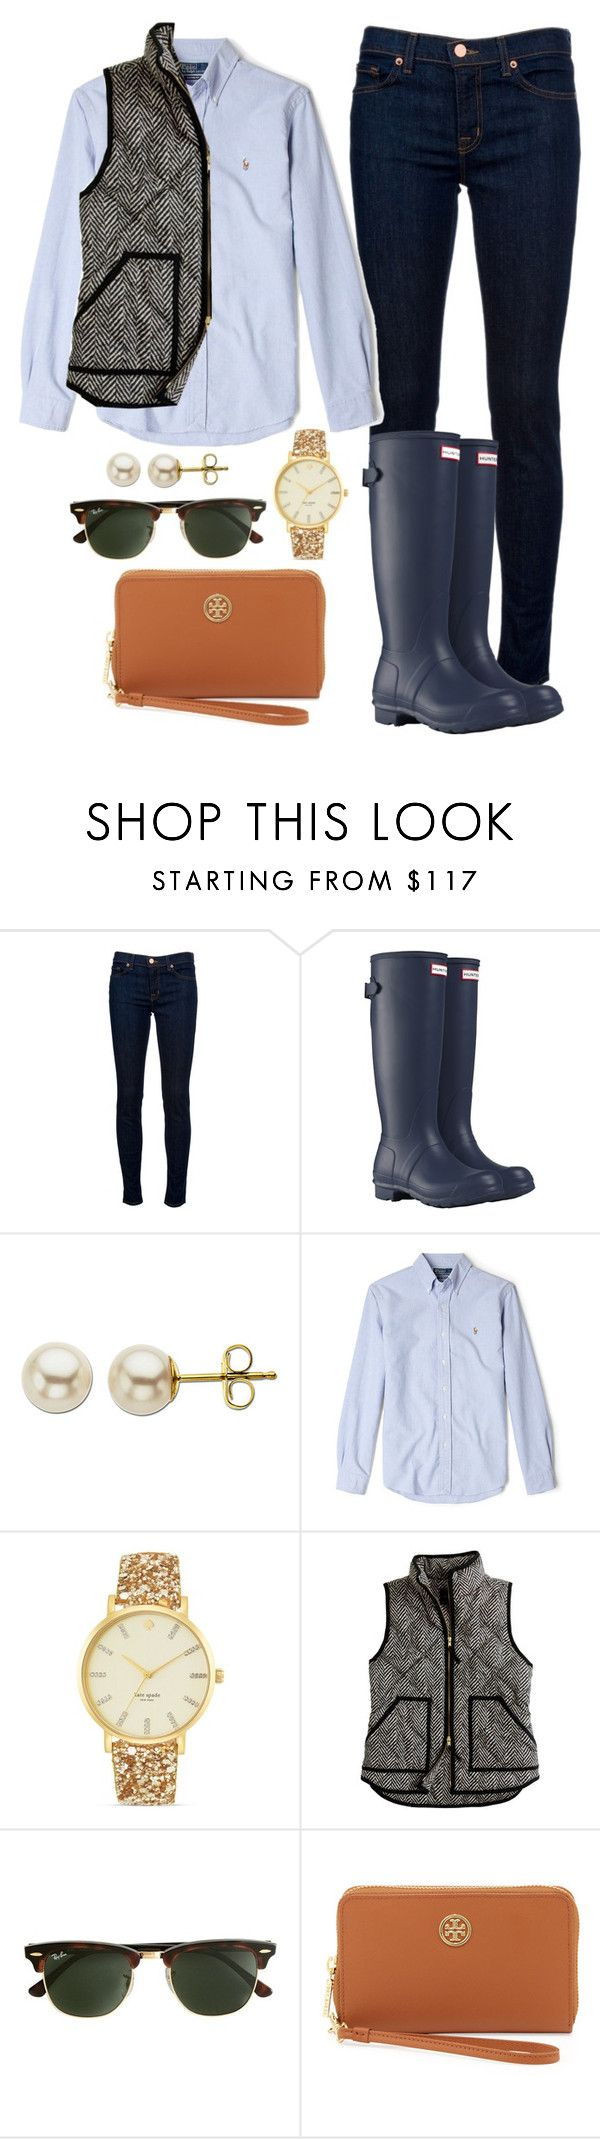 """""""Need Hunter boots!!!"""" by madimcclatchey ❤ liked on Polyvore featuring J Brand, Hunter, Lord & Taylor, Polo Ralph Lauren, Kate Spade, J.Crew and Tory Burch"""